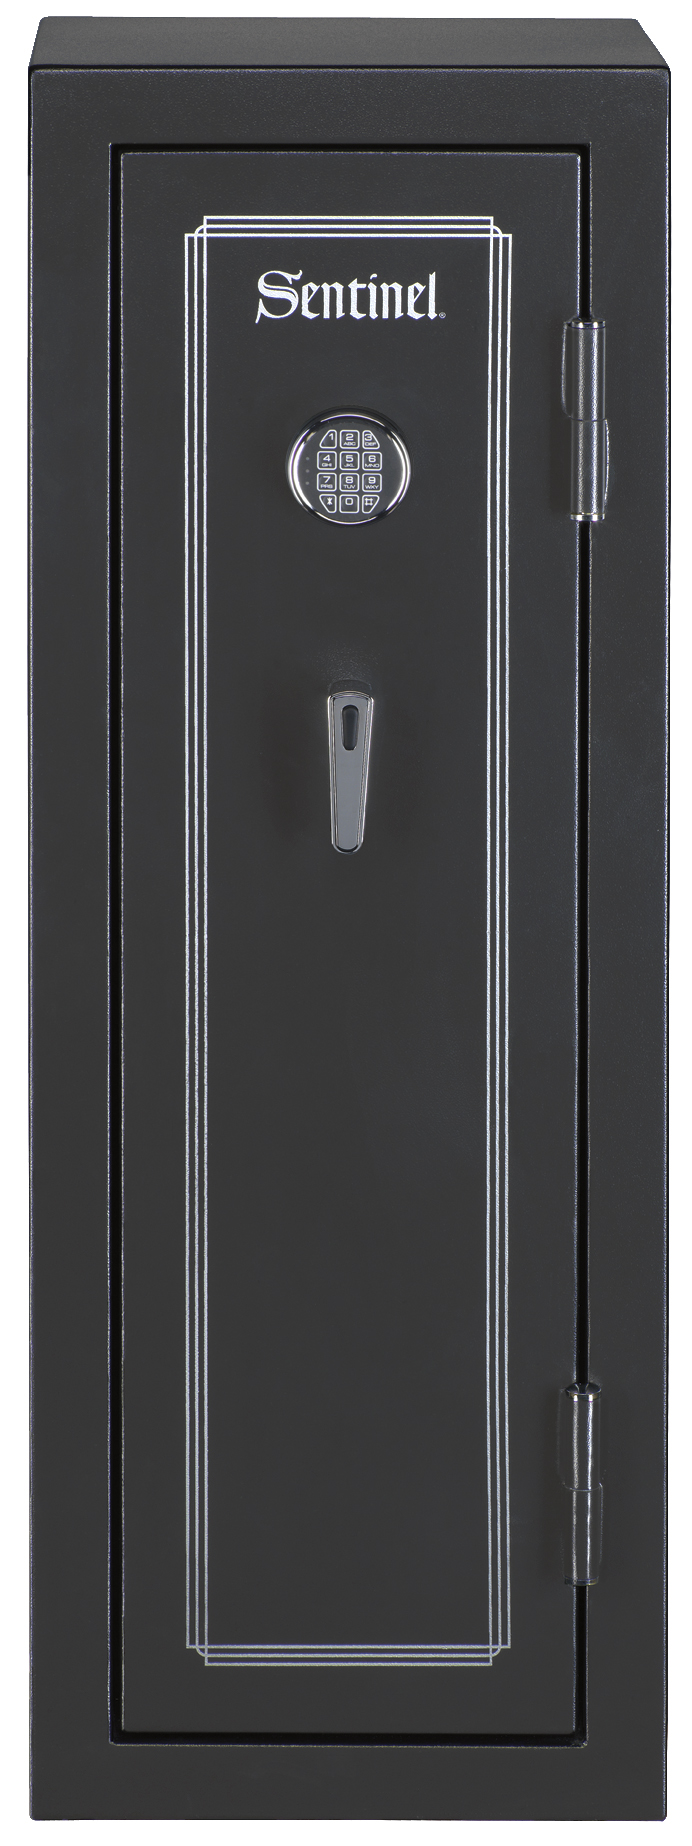 12 Gun Sentinel Fire Safe by Stack-On Products